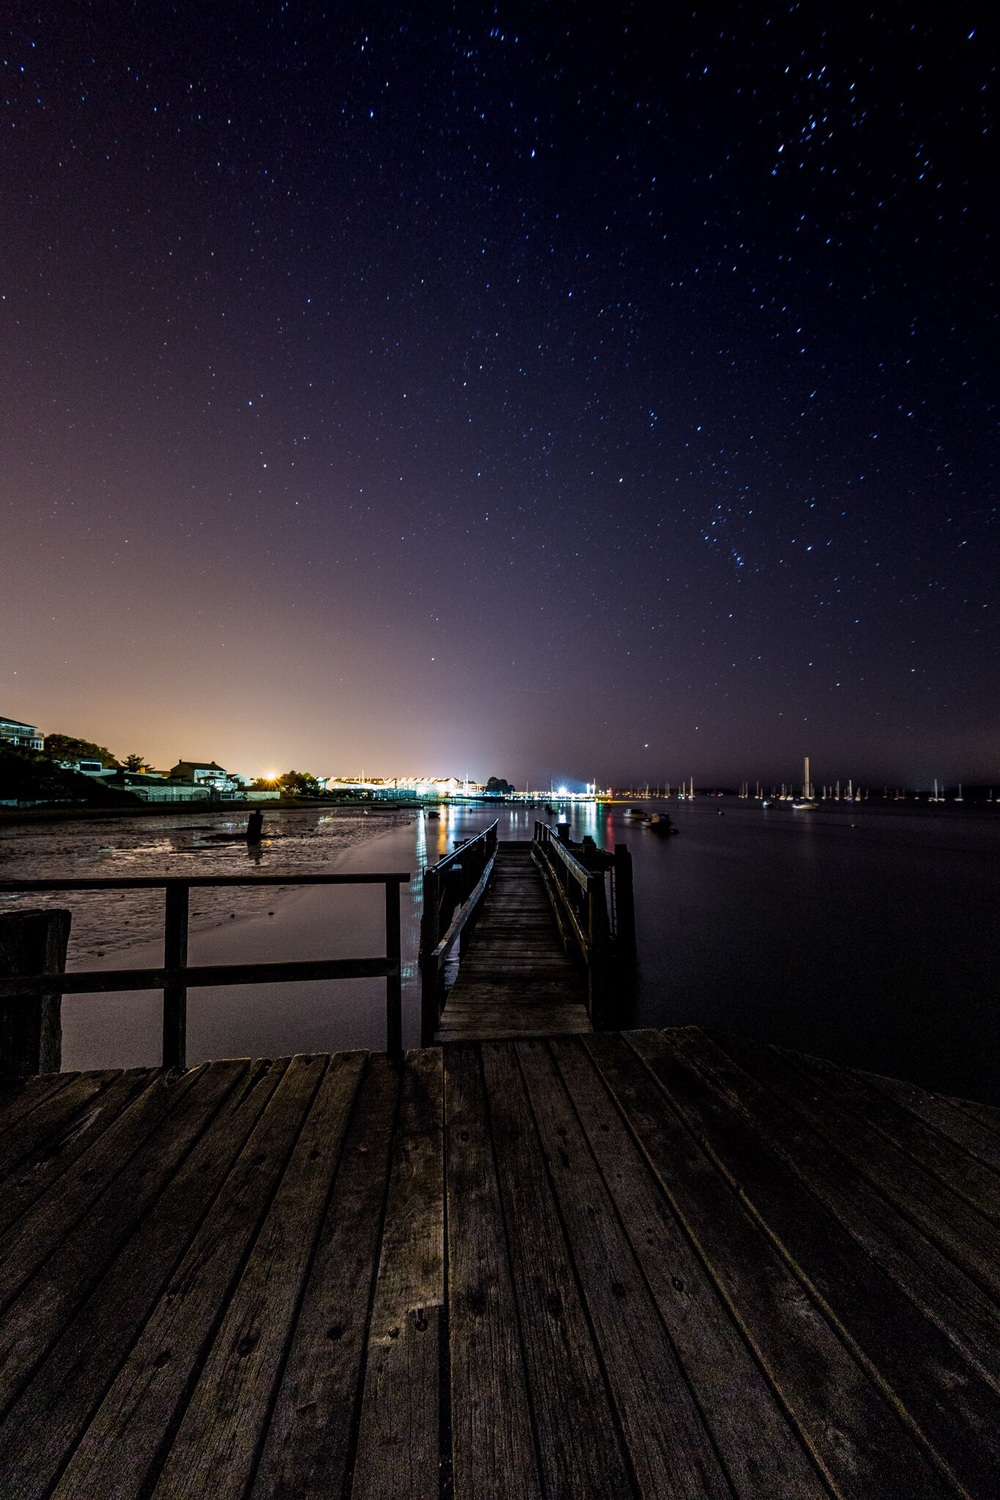 The view towards Poole Port at night from Hamworthy